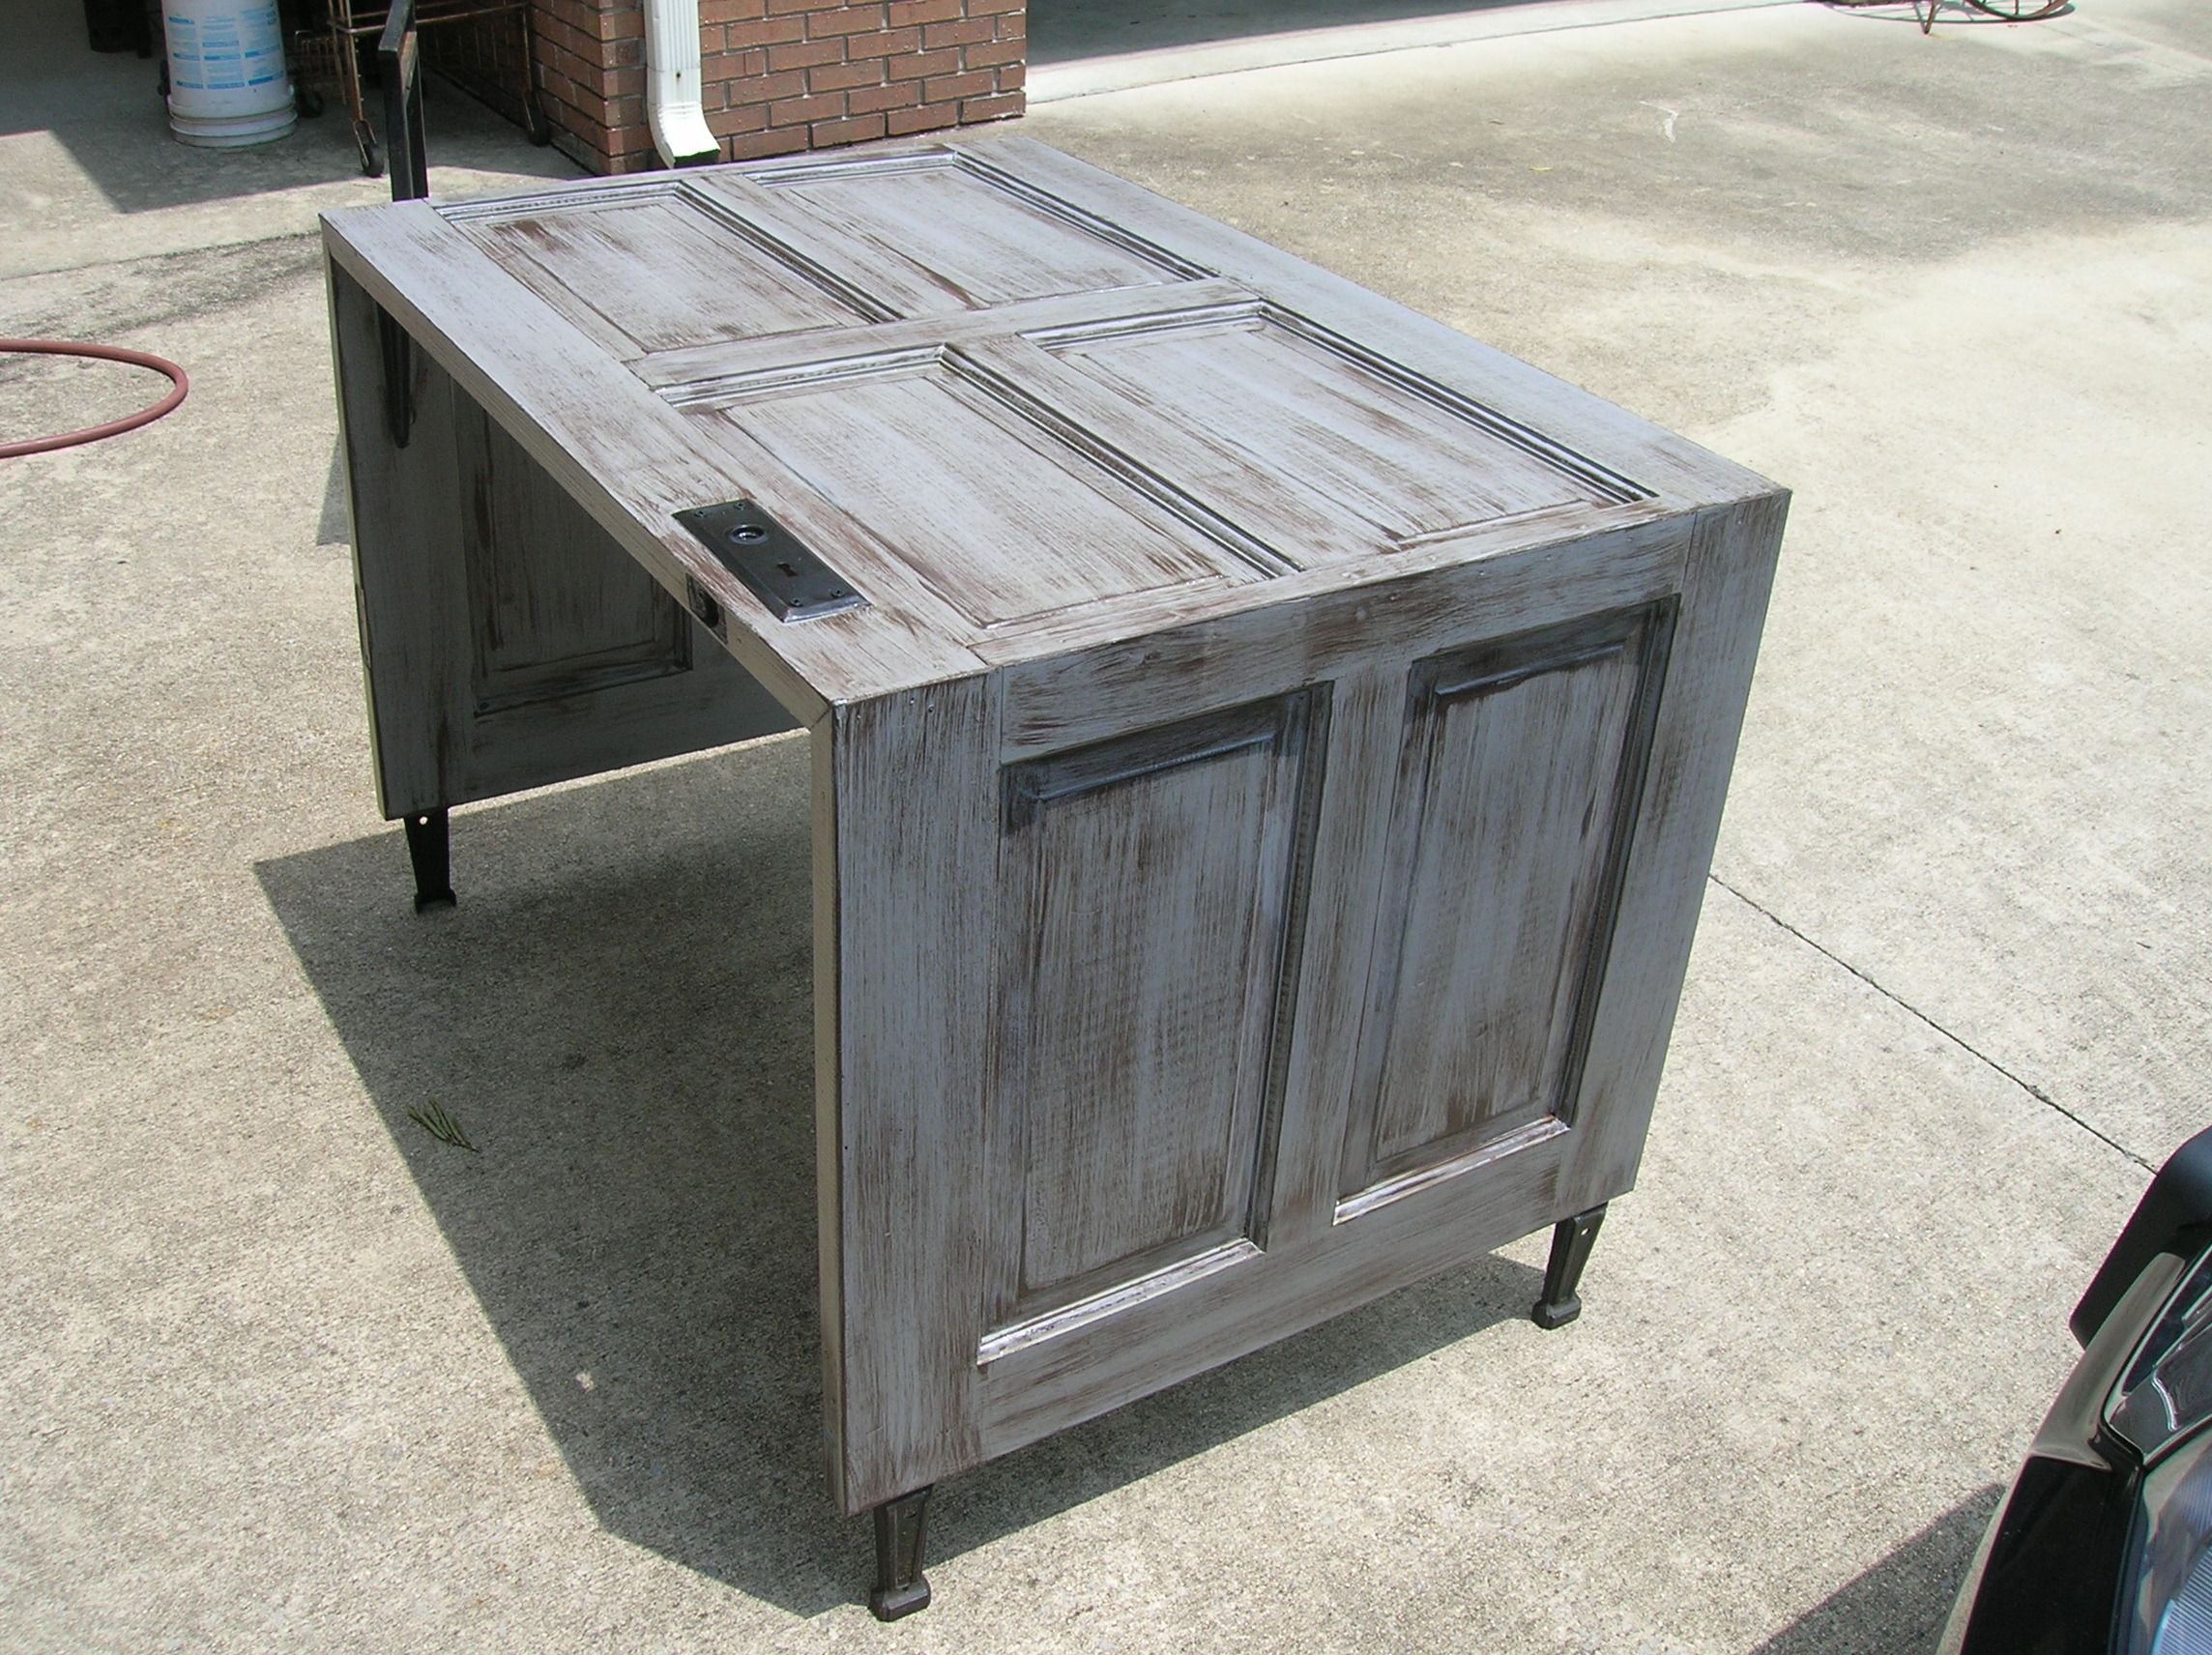 This Is A Desk Or Table Made From Old Door With Bath Tub Legs.